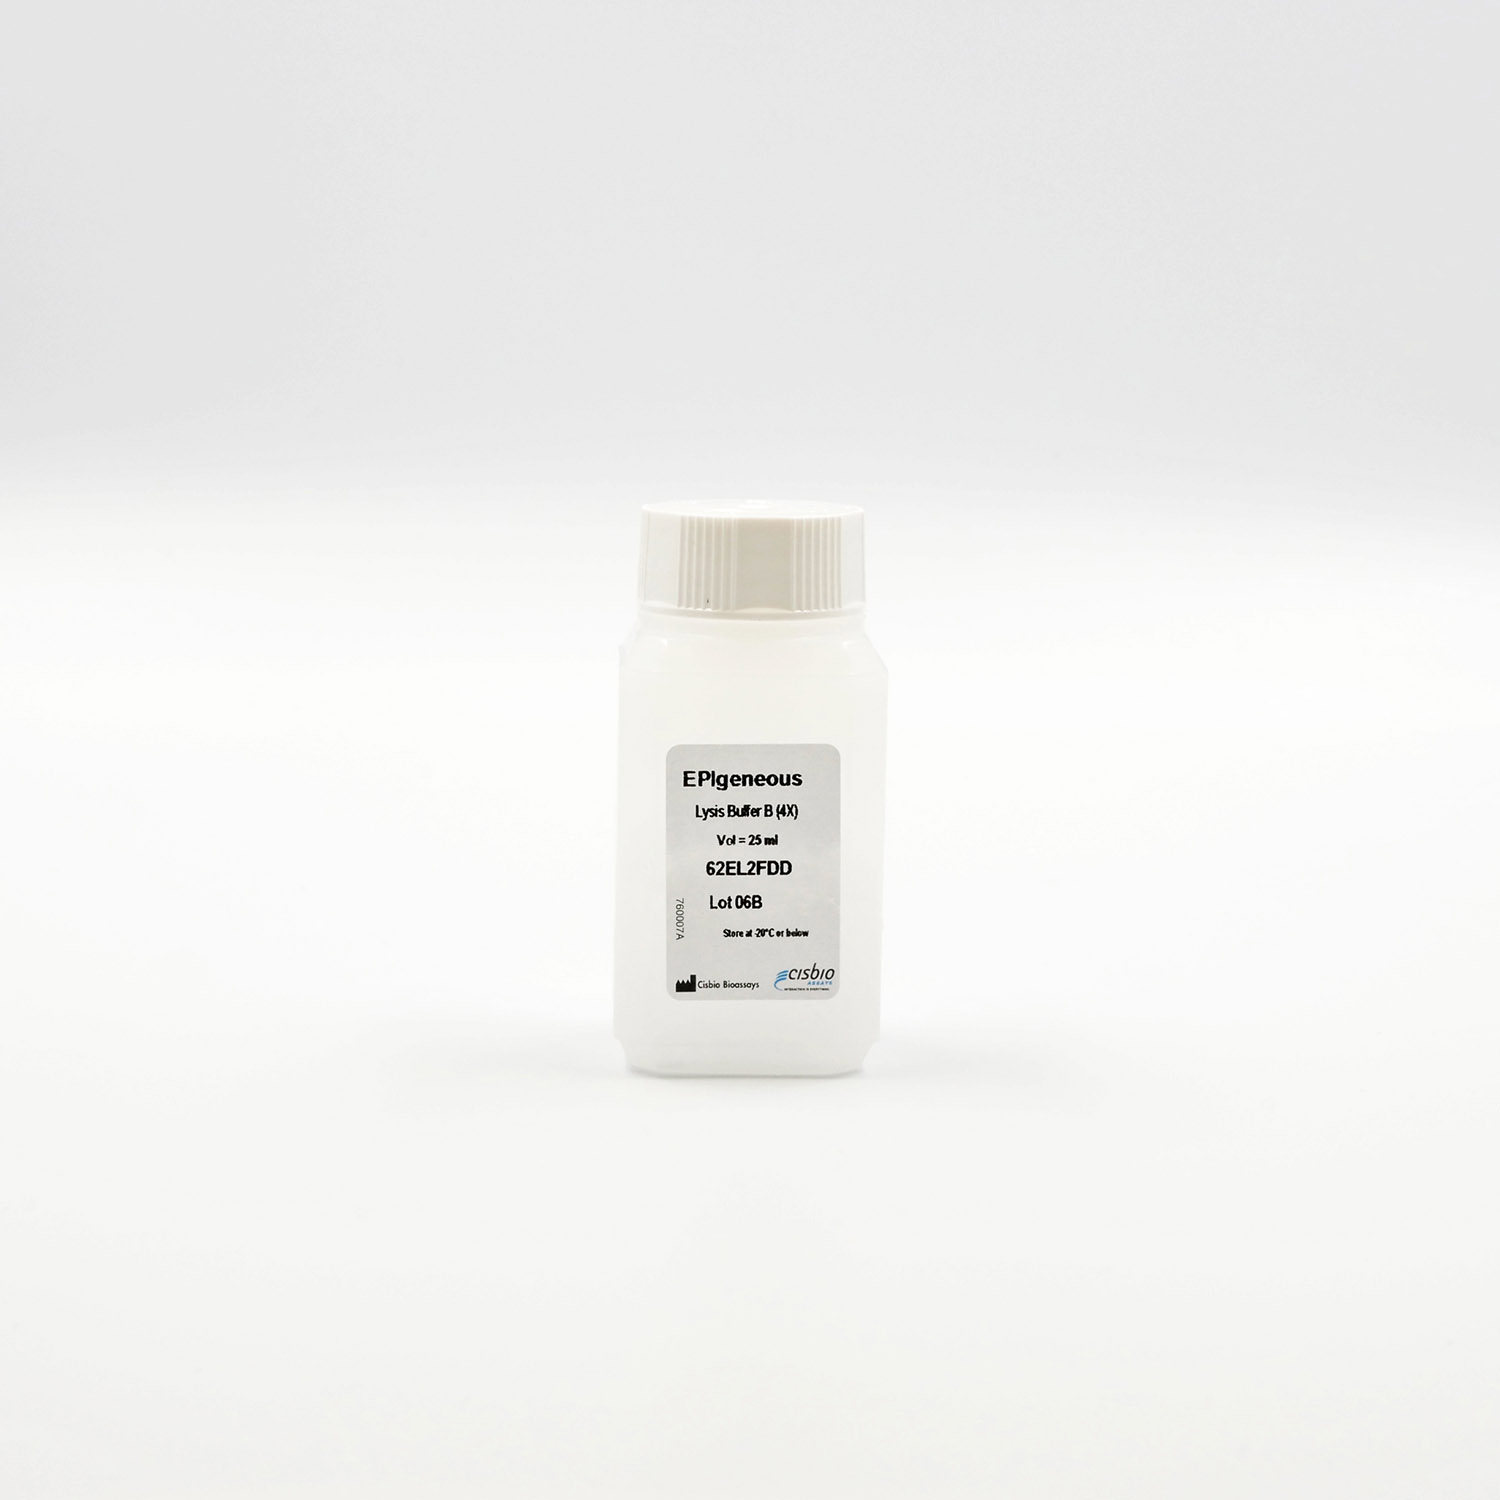 EPIgeneous lysis buffer B vial